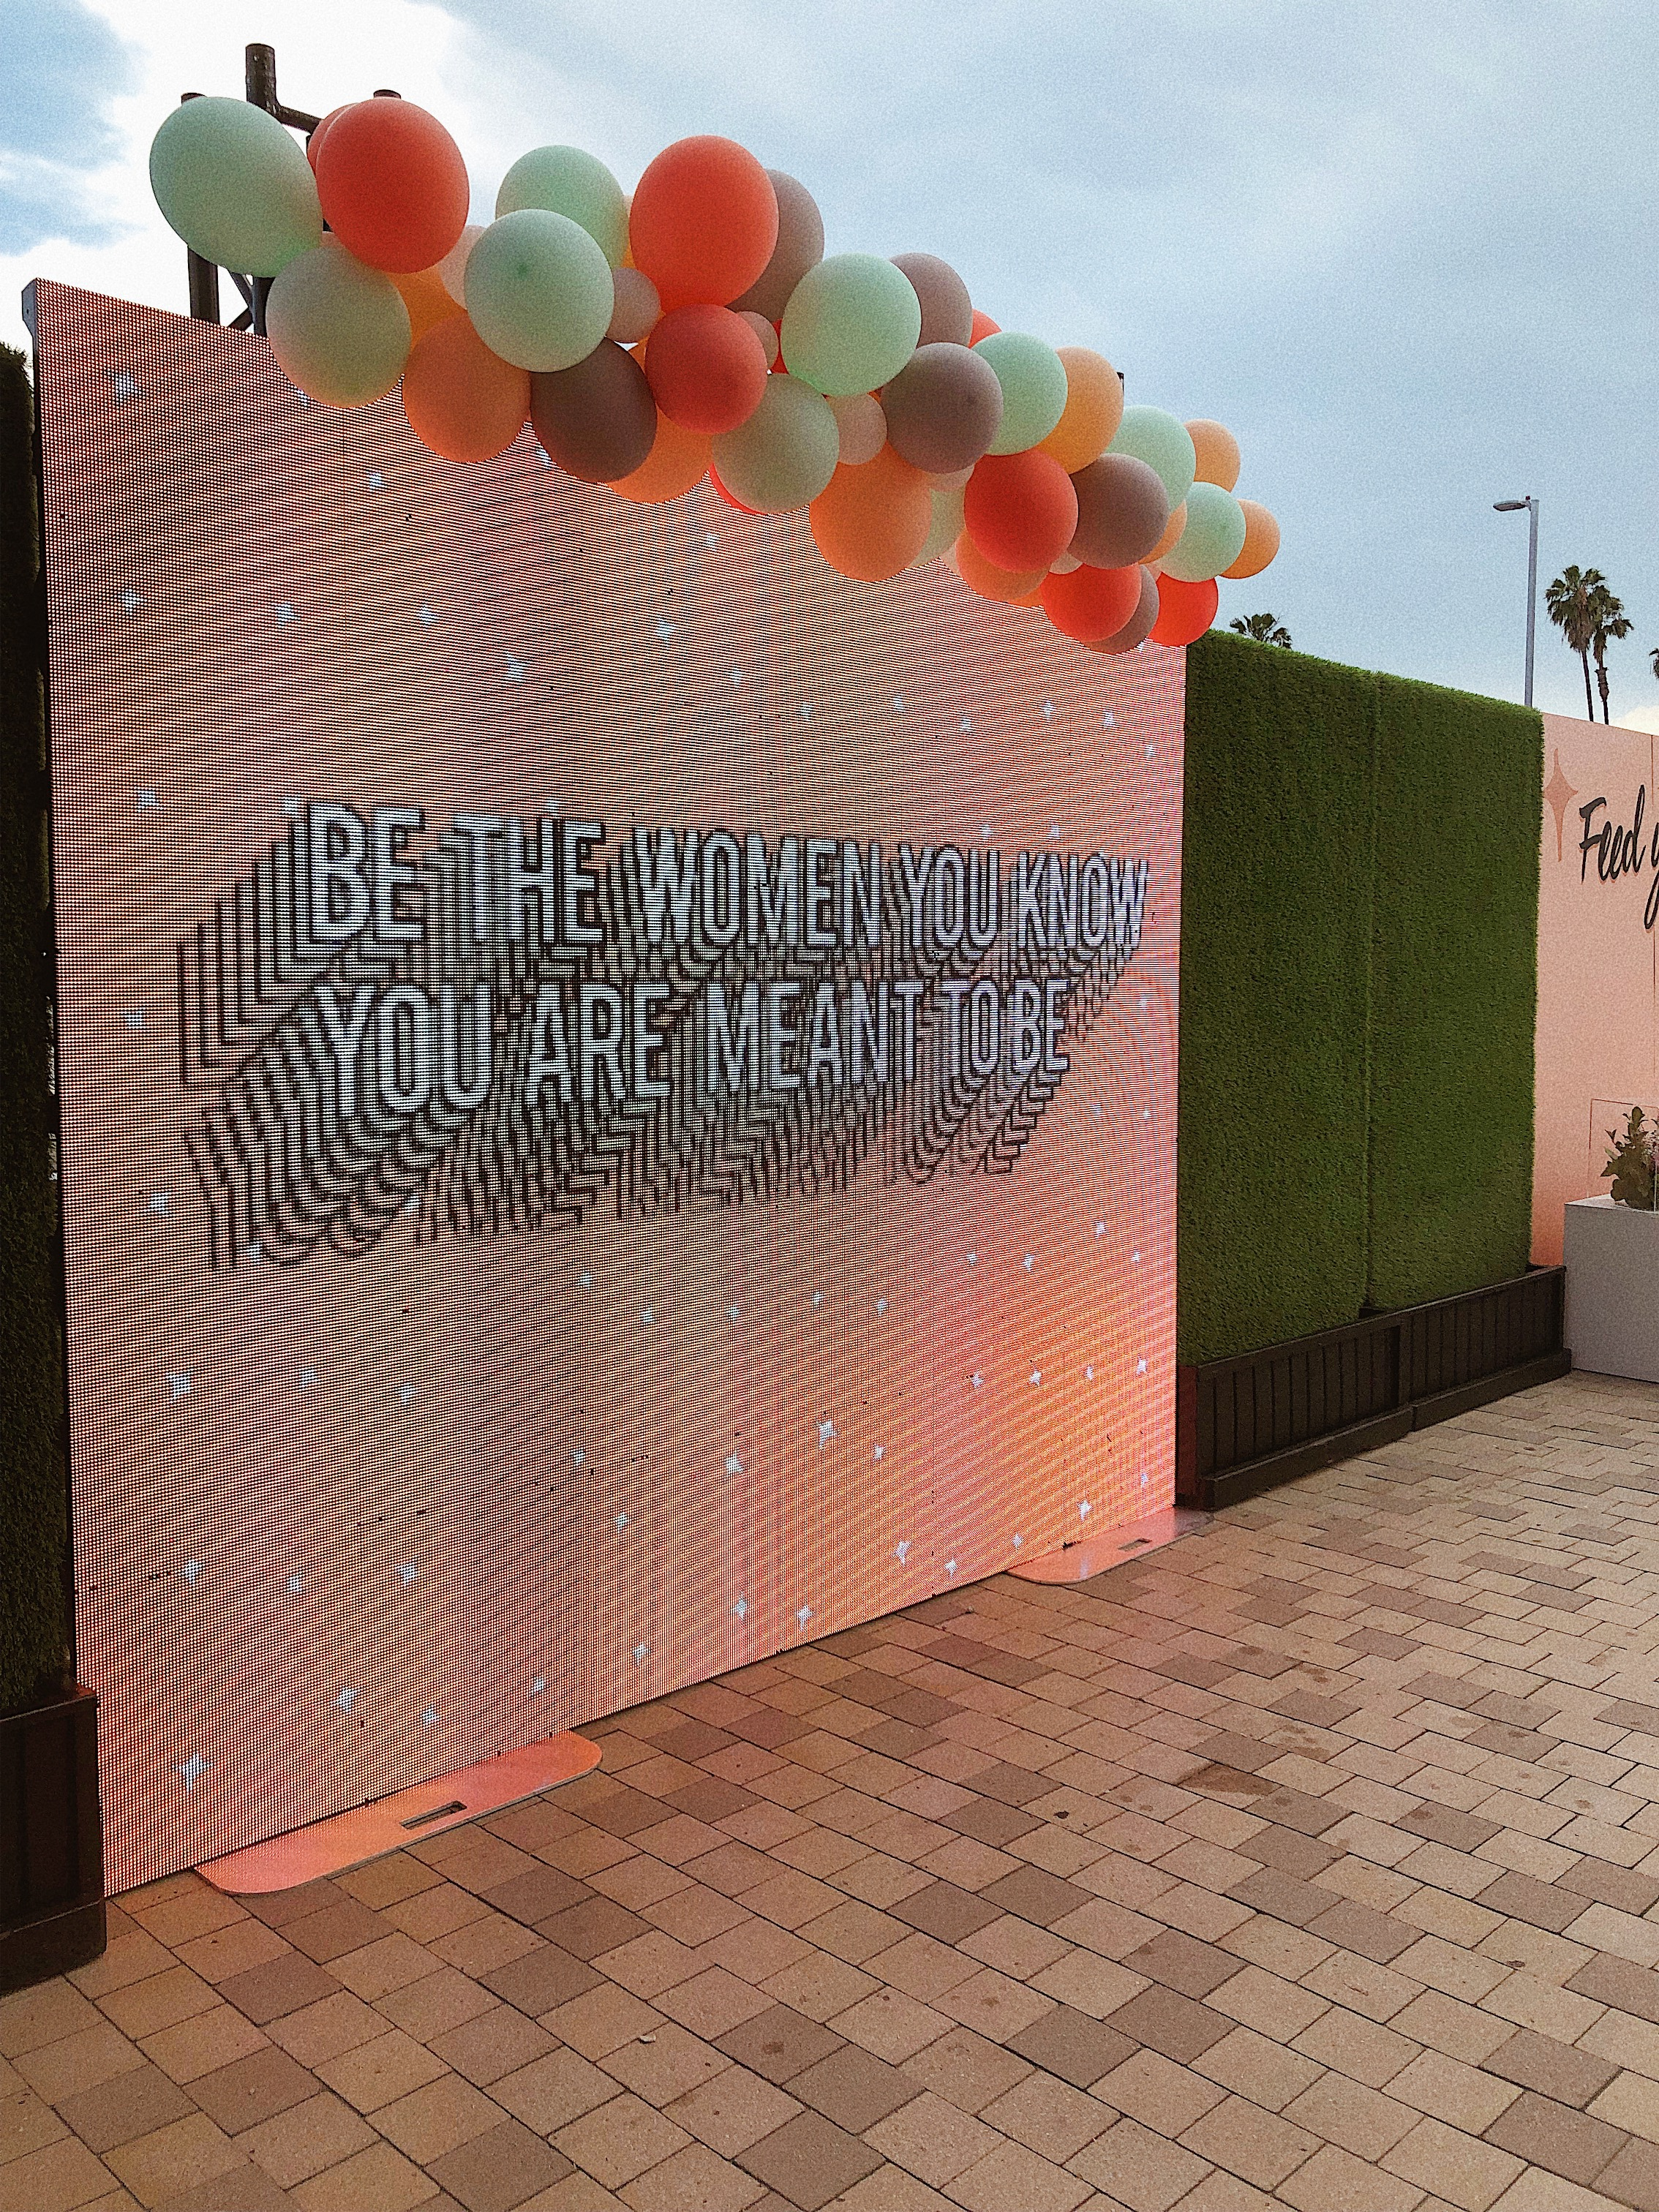 The Hautemommie is a Long Beach based lifestyle blog written by Leslie Antonoff.